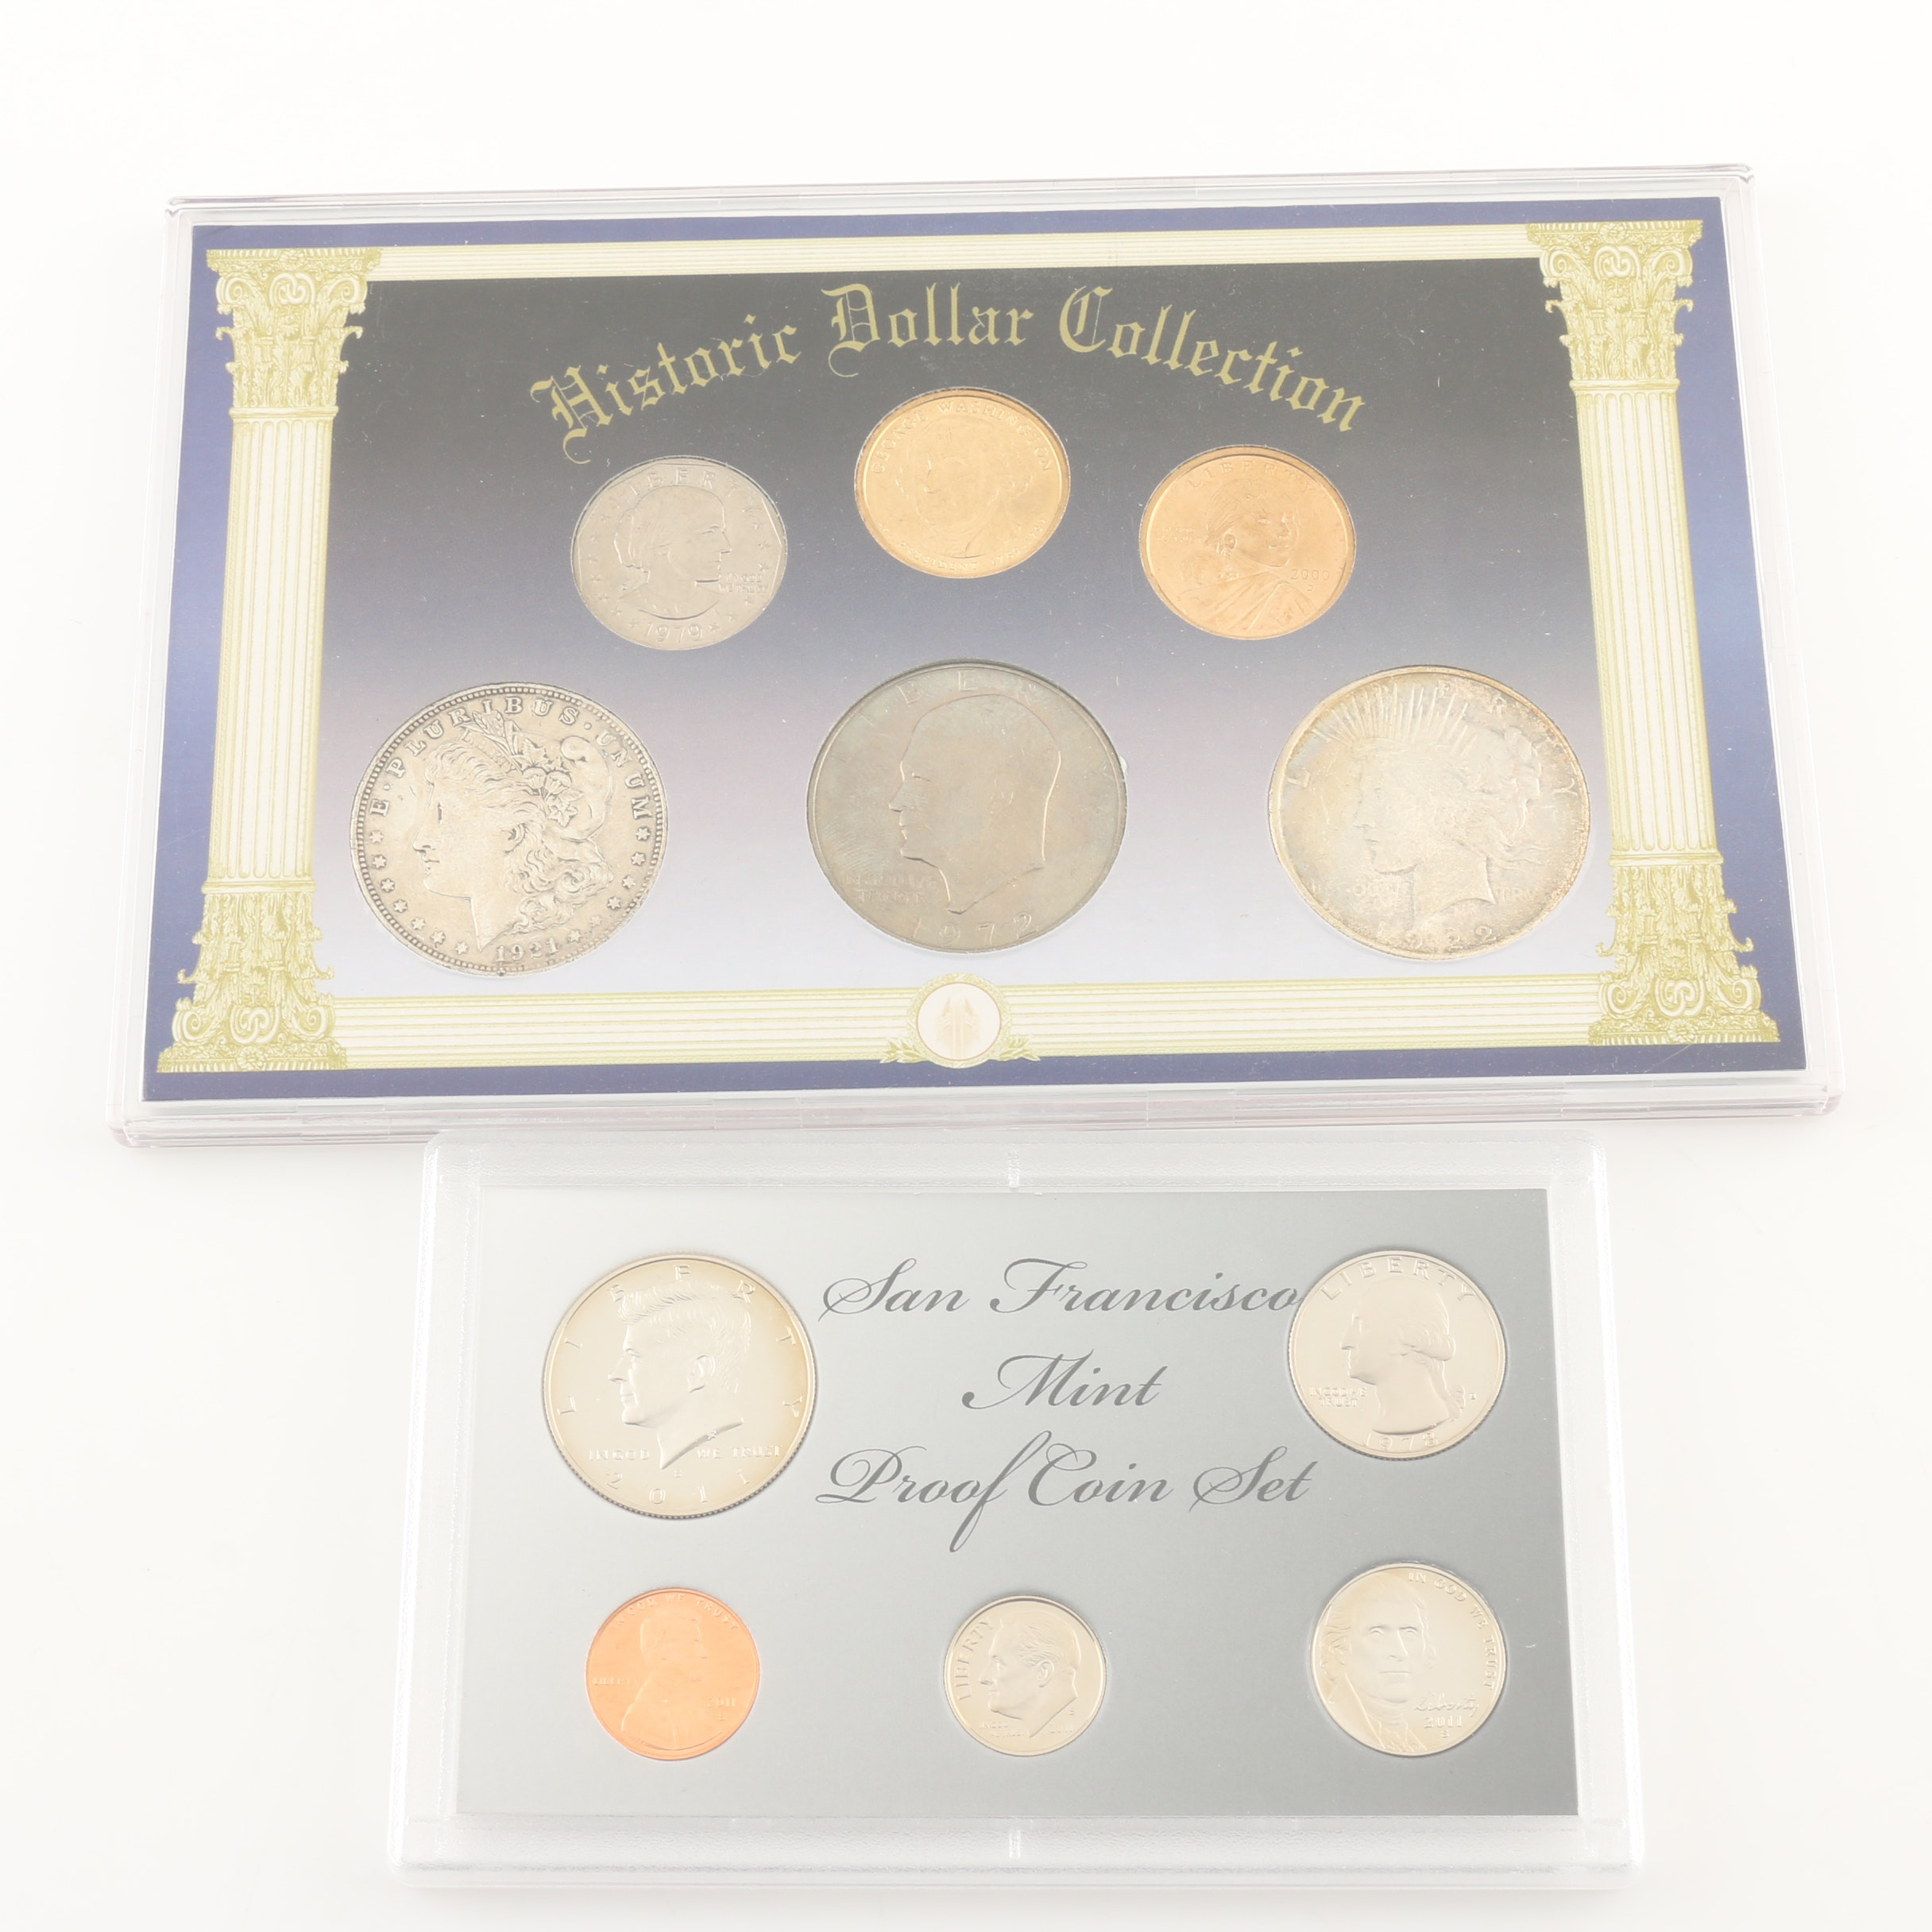 """""""Historic Dollar Collection"""" and a San Francisco Mint Proof Coin Set"""